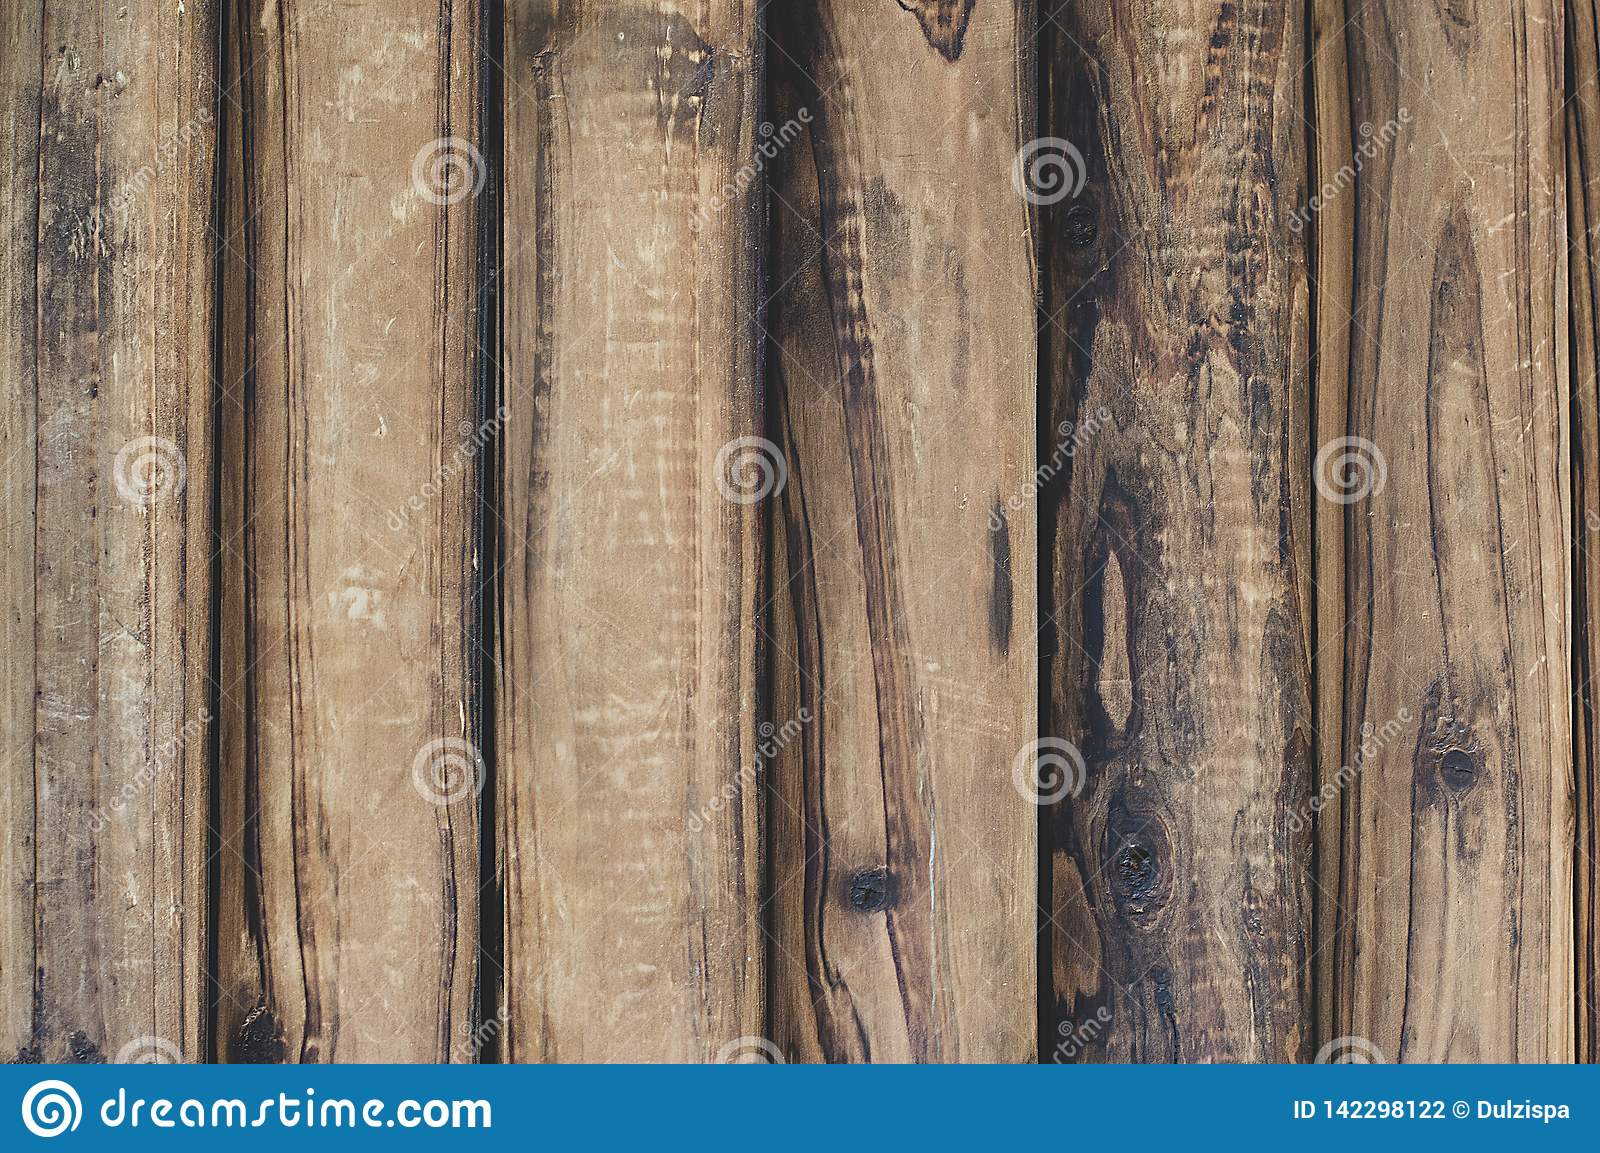 Brown wood texture background. Vintage, abstract, empty template